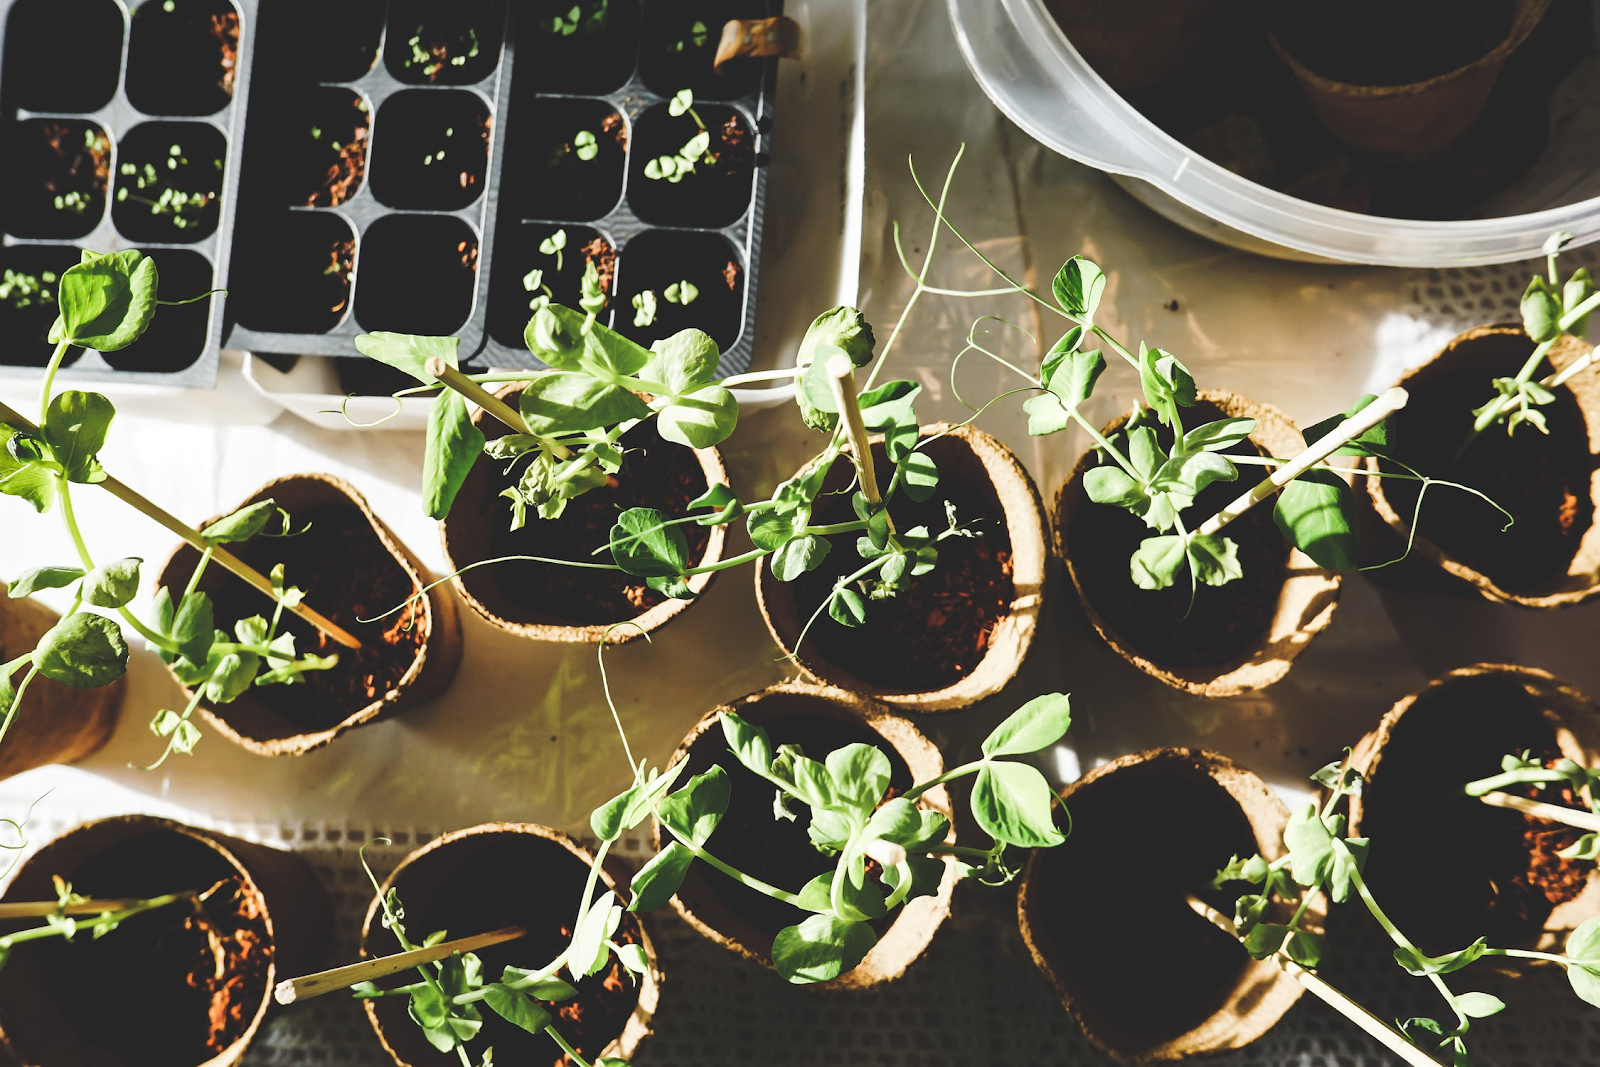 Many seedlings perfect for your home